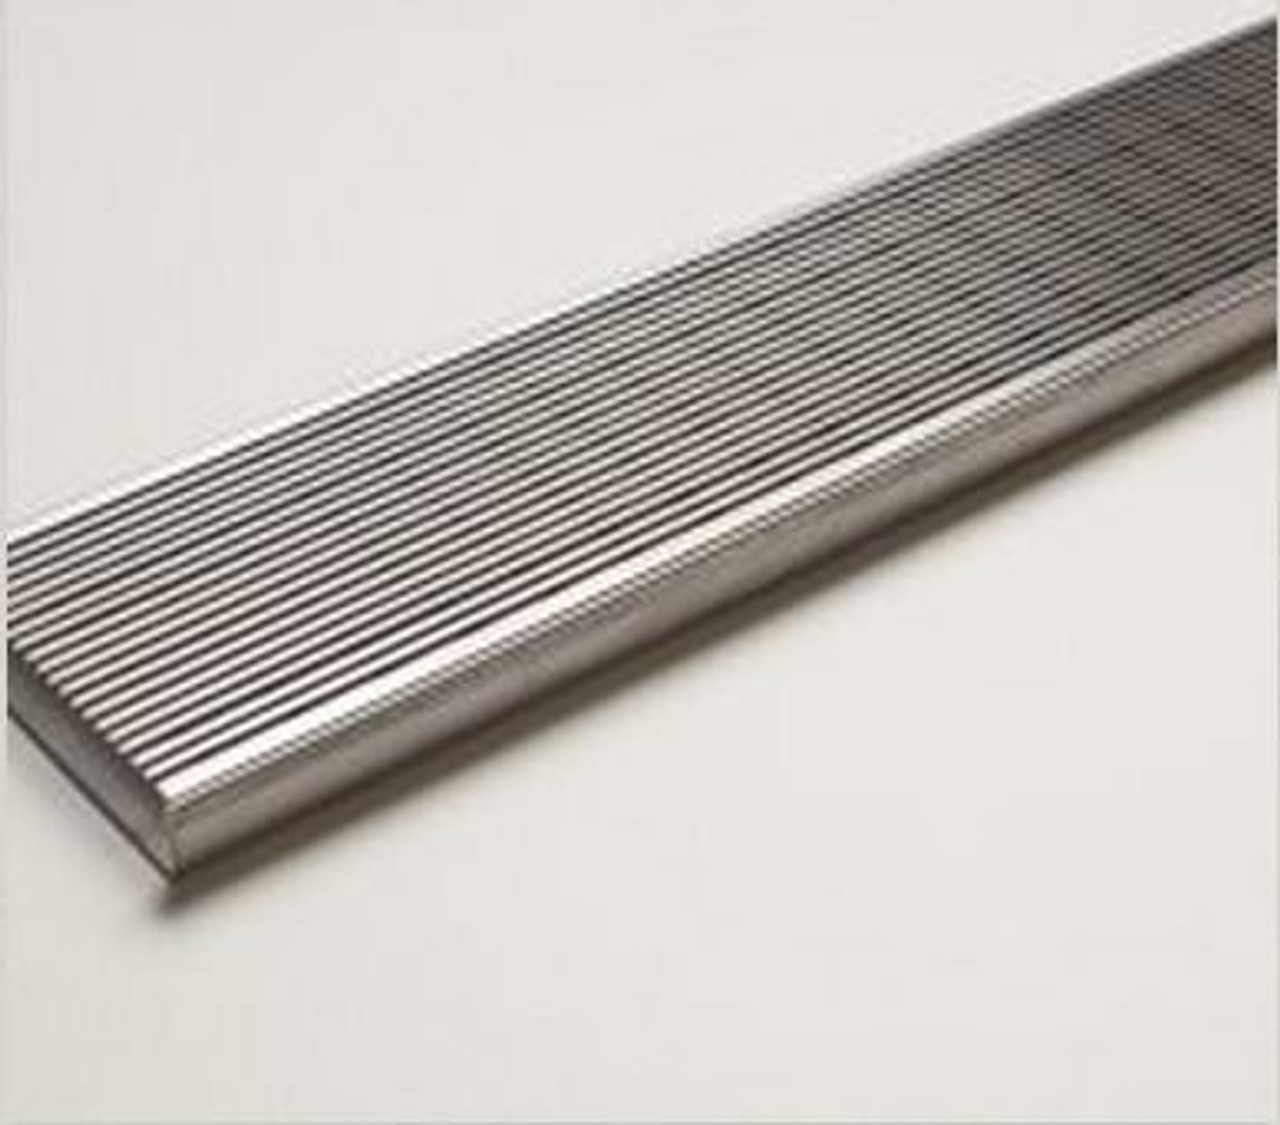 100ARIC20-1000 Stormtech Stainless Steel Grate